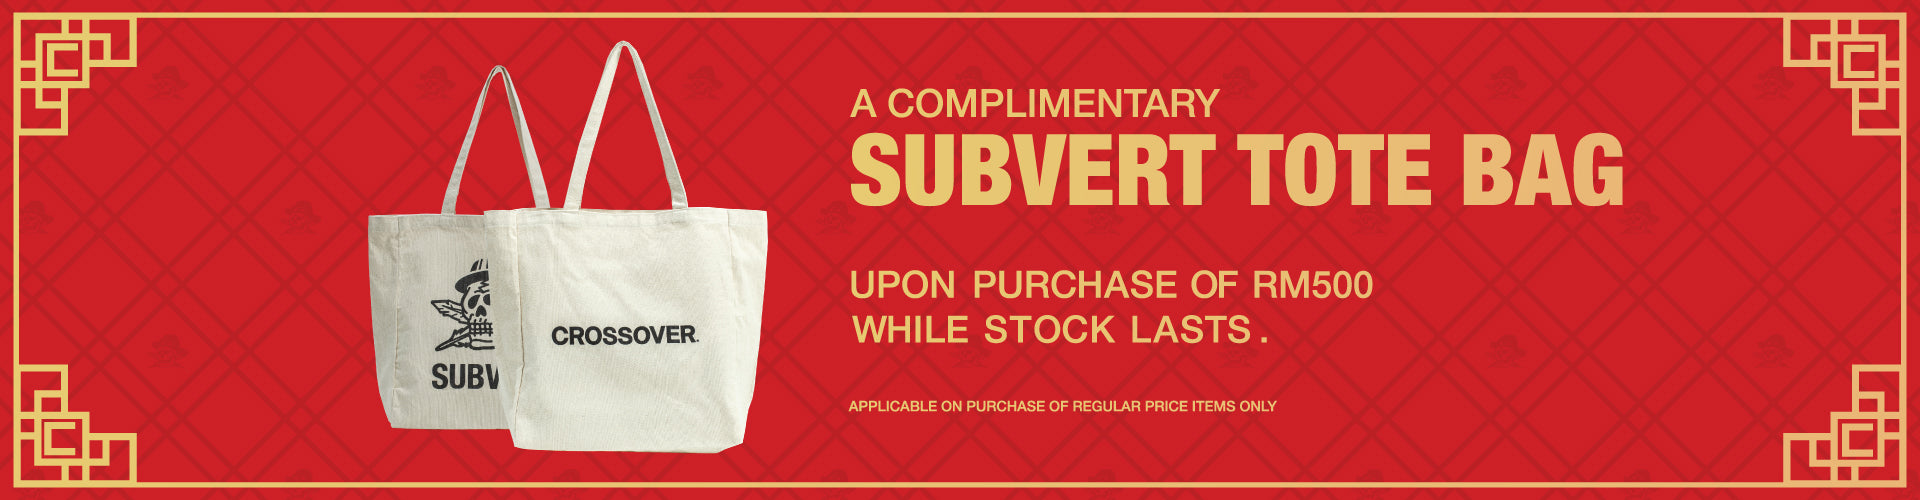 Crossover Subvert Tote Bag